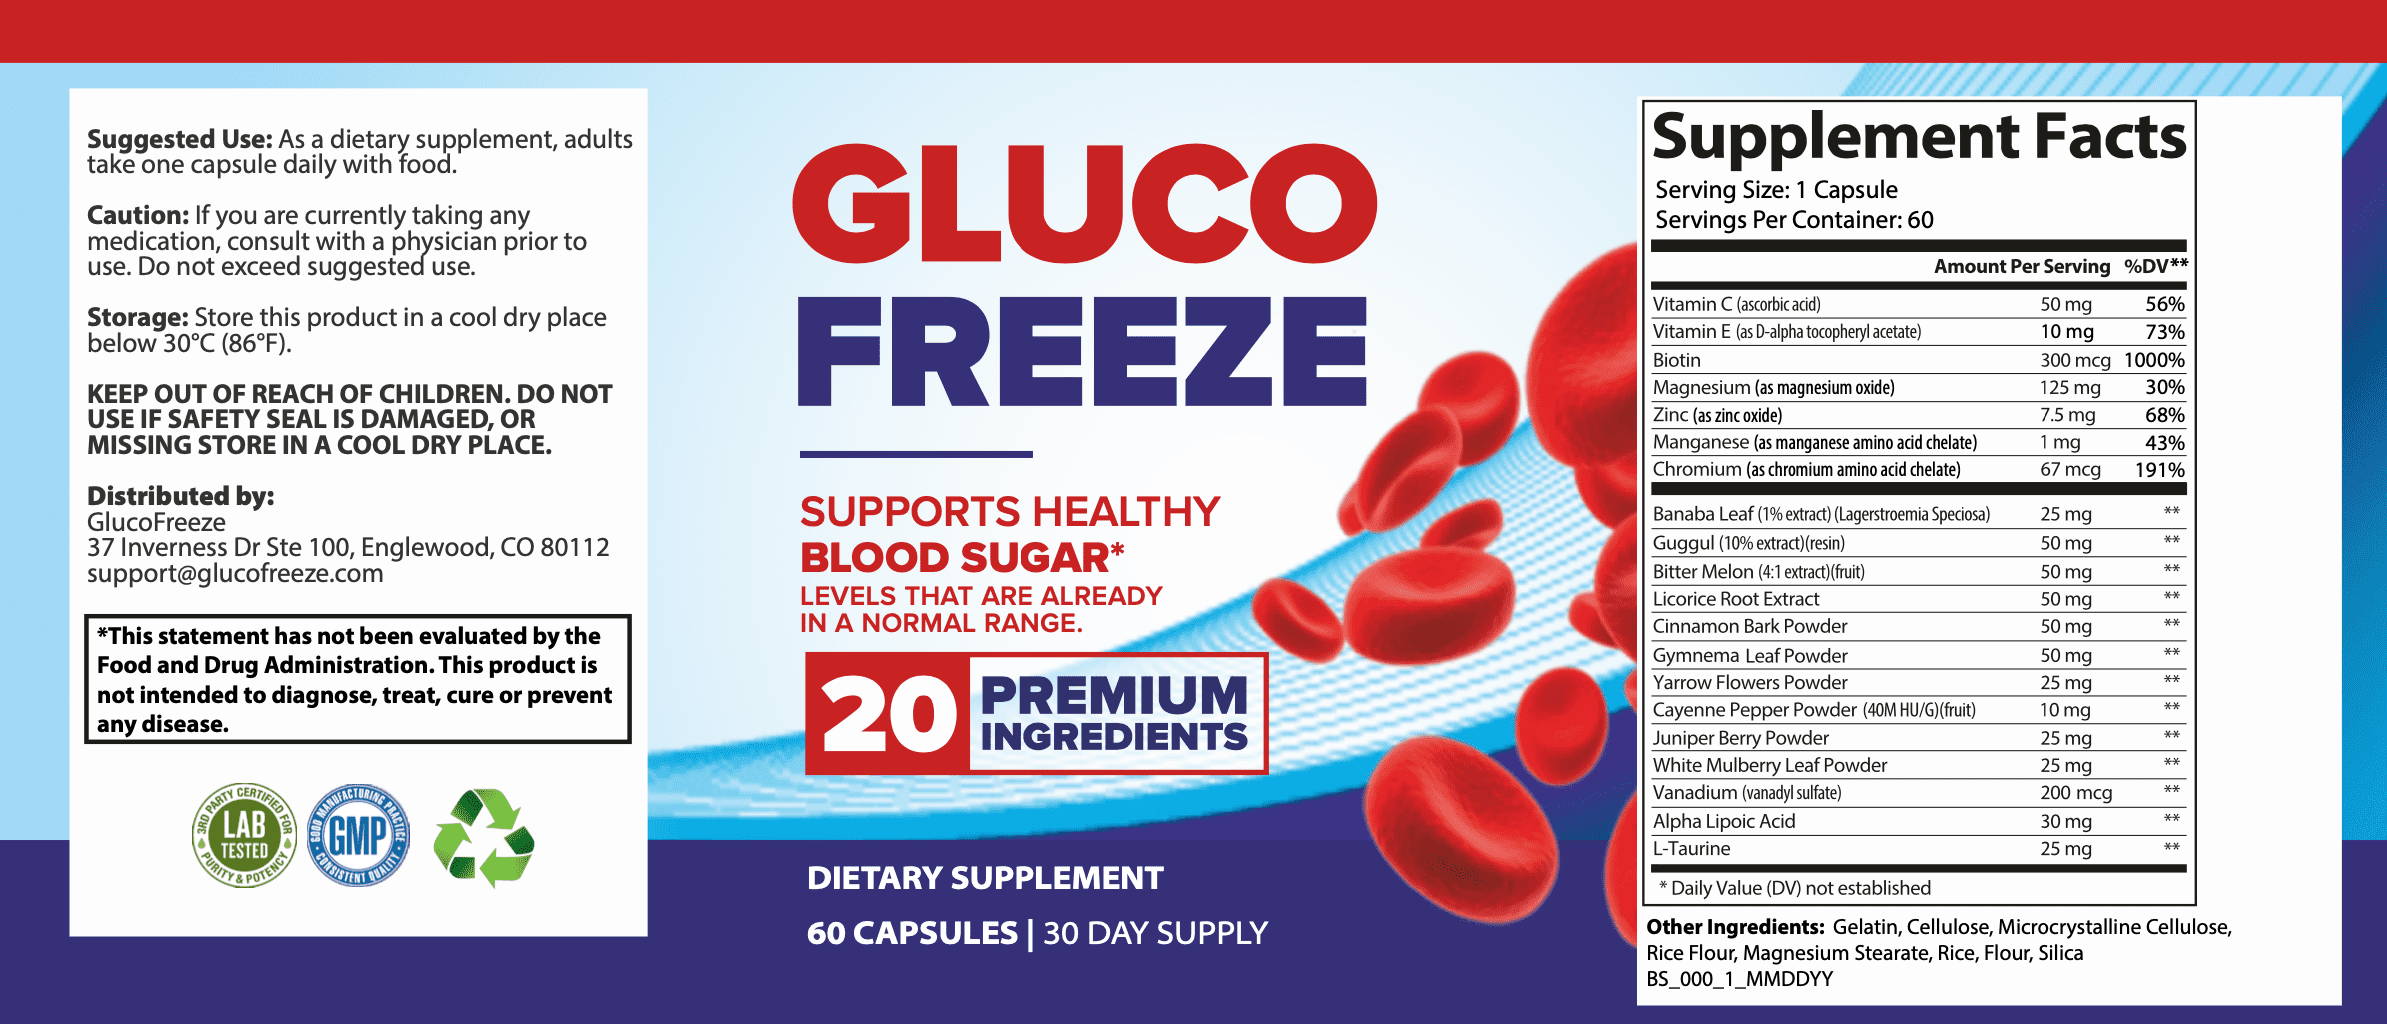 Gluco Freeze Reviews® - Gluco Freeze Support Healthy Blood Sugar?